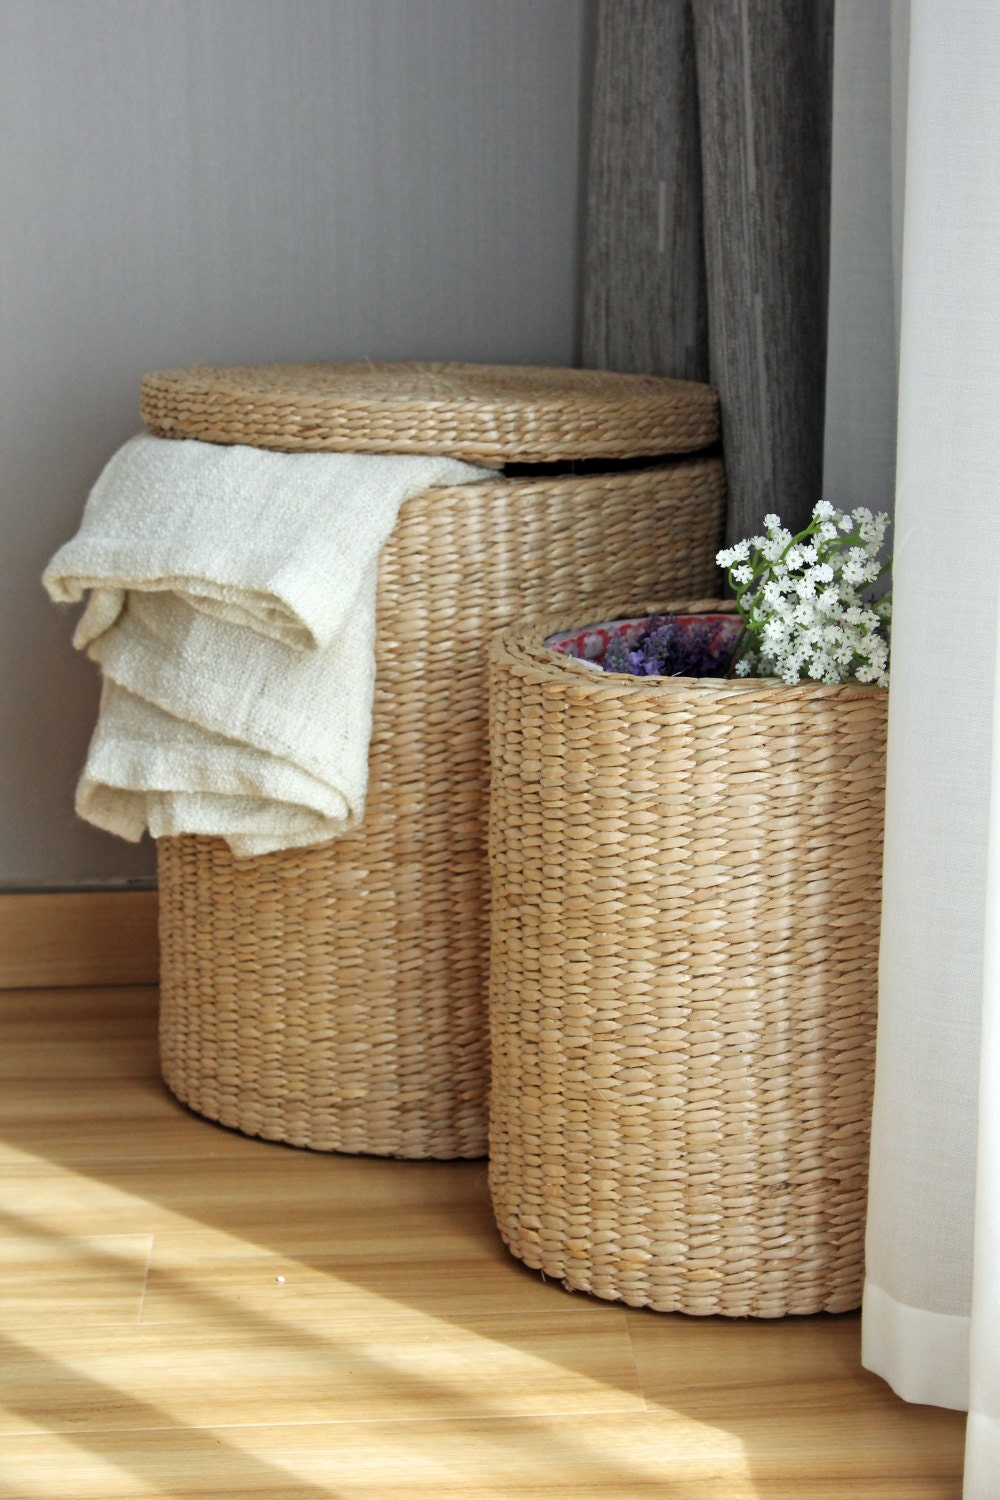 Special Offer Handwoven Round Storage Baskets Laundry